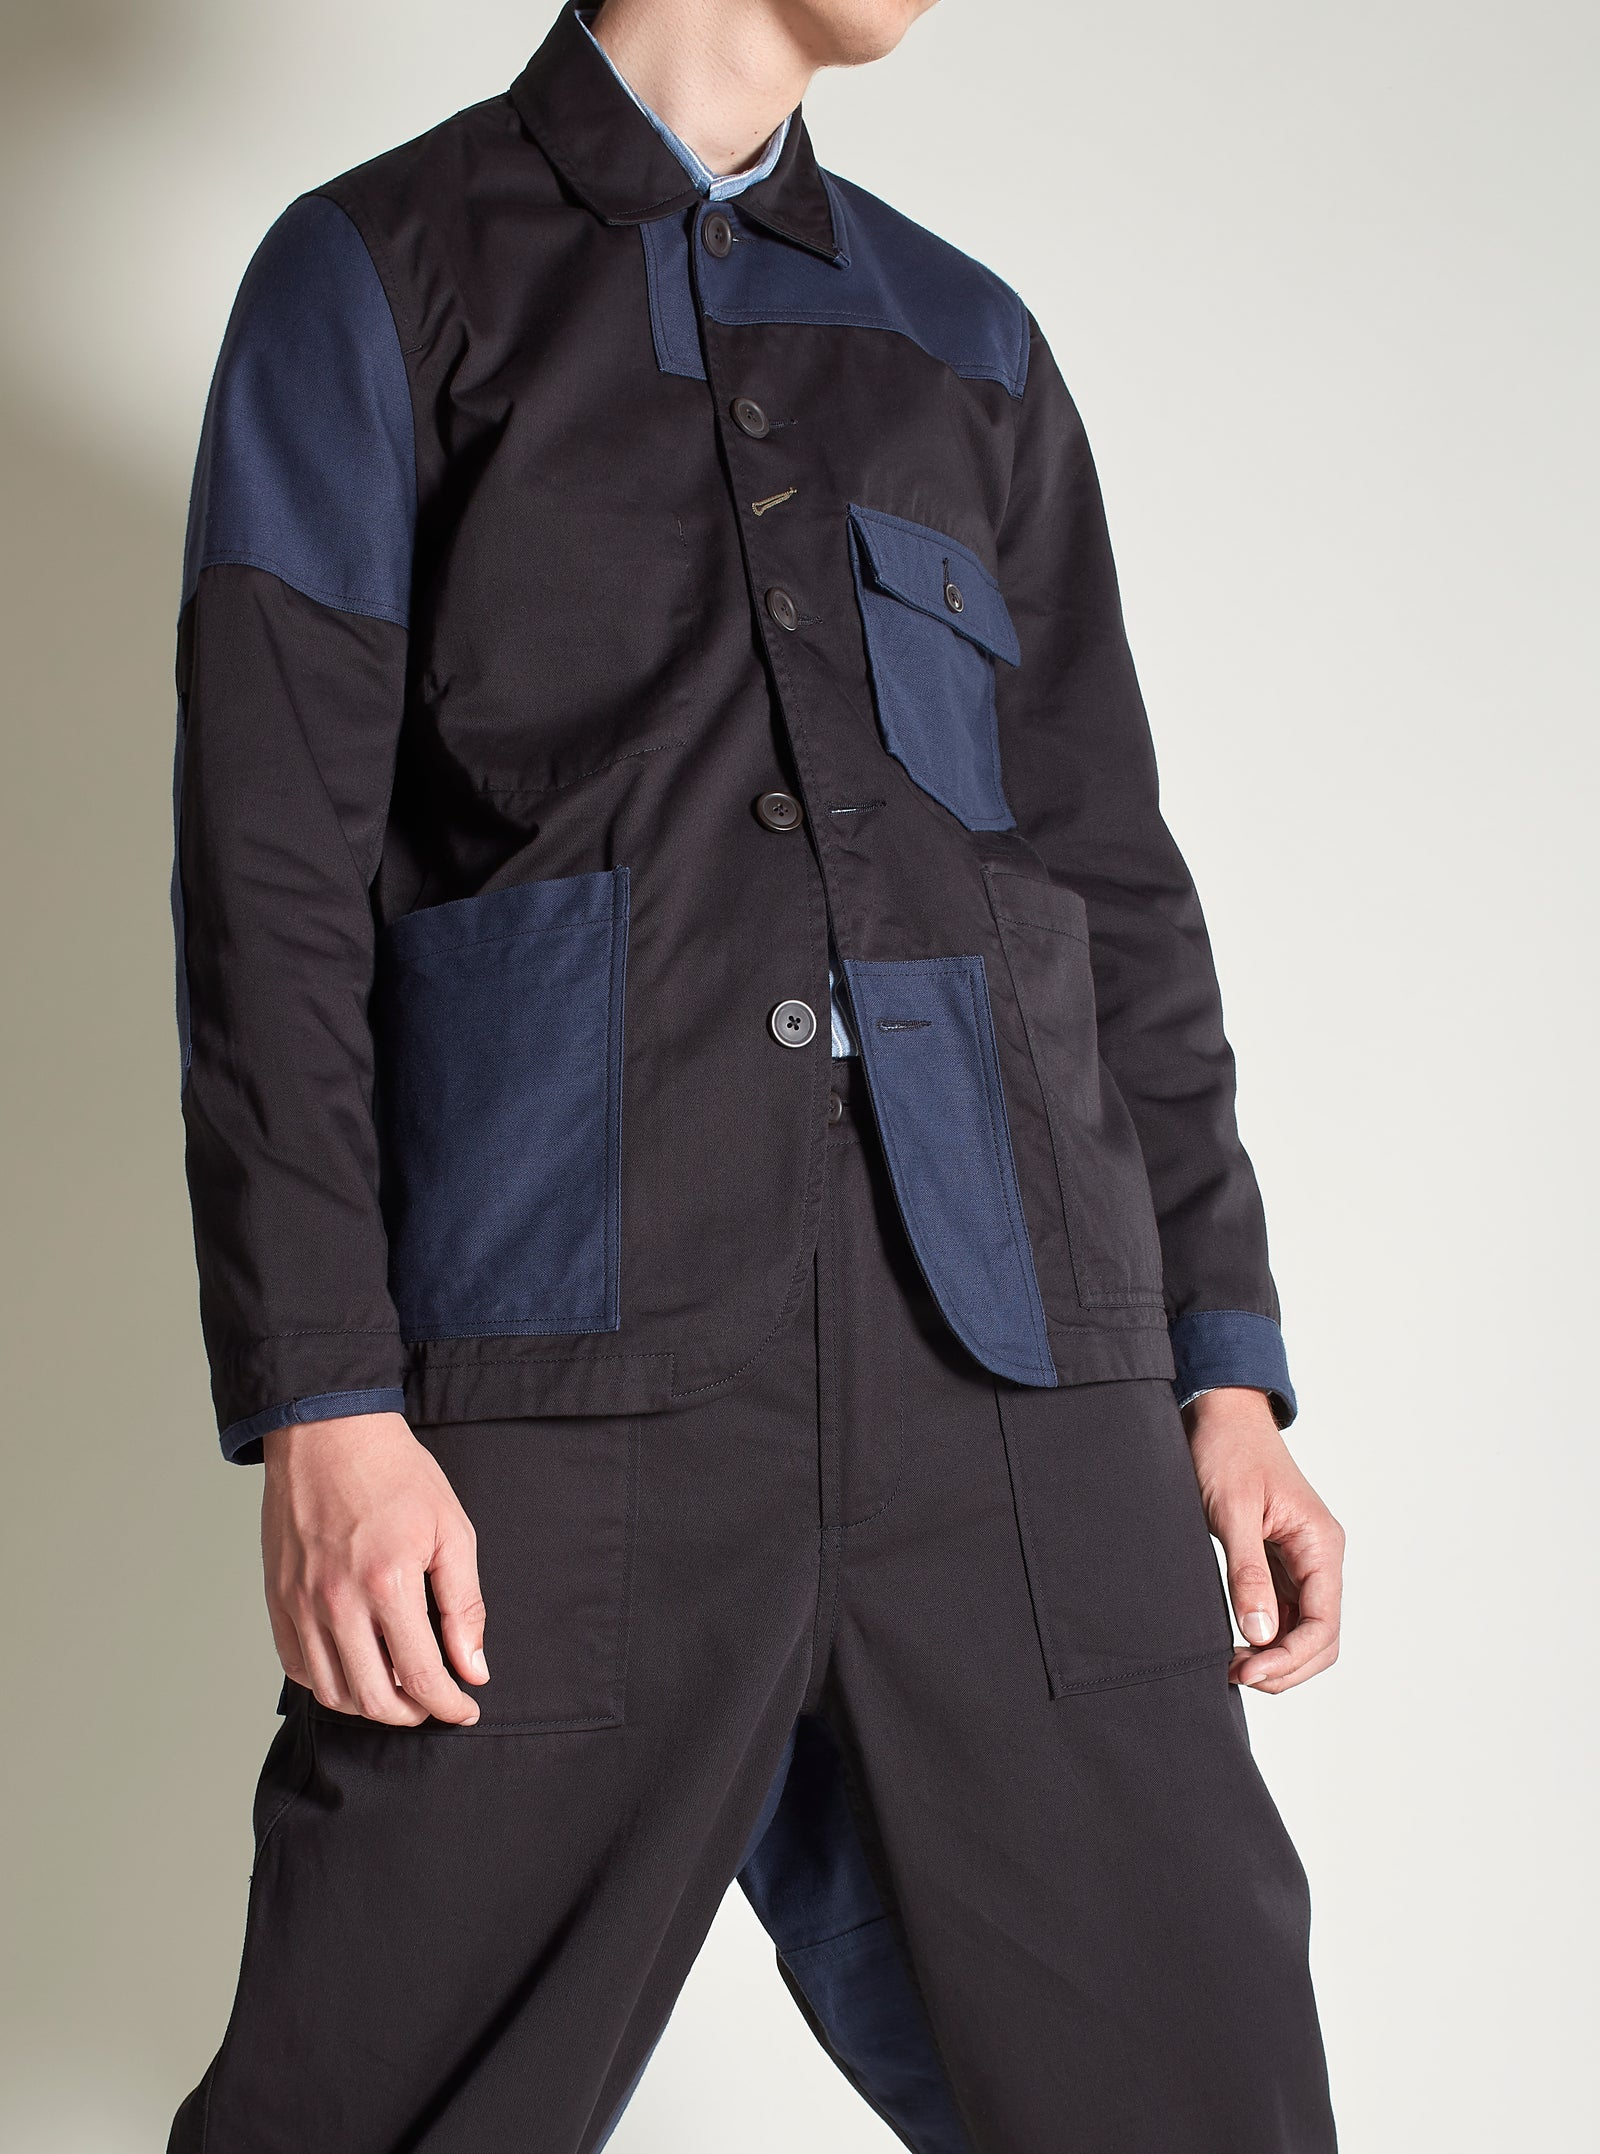 Universal Works Patched Mill Bakers Jacket in Black/Navy Twill Mix